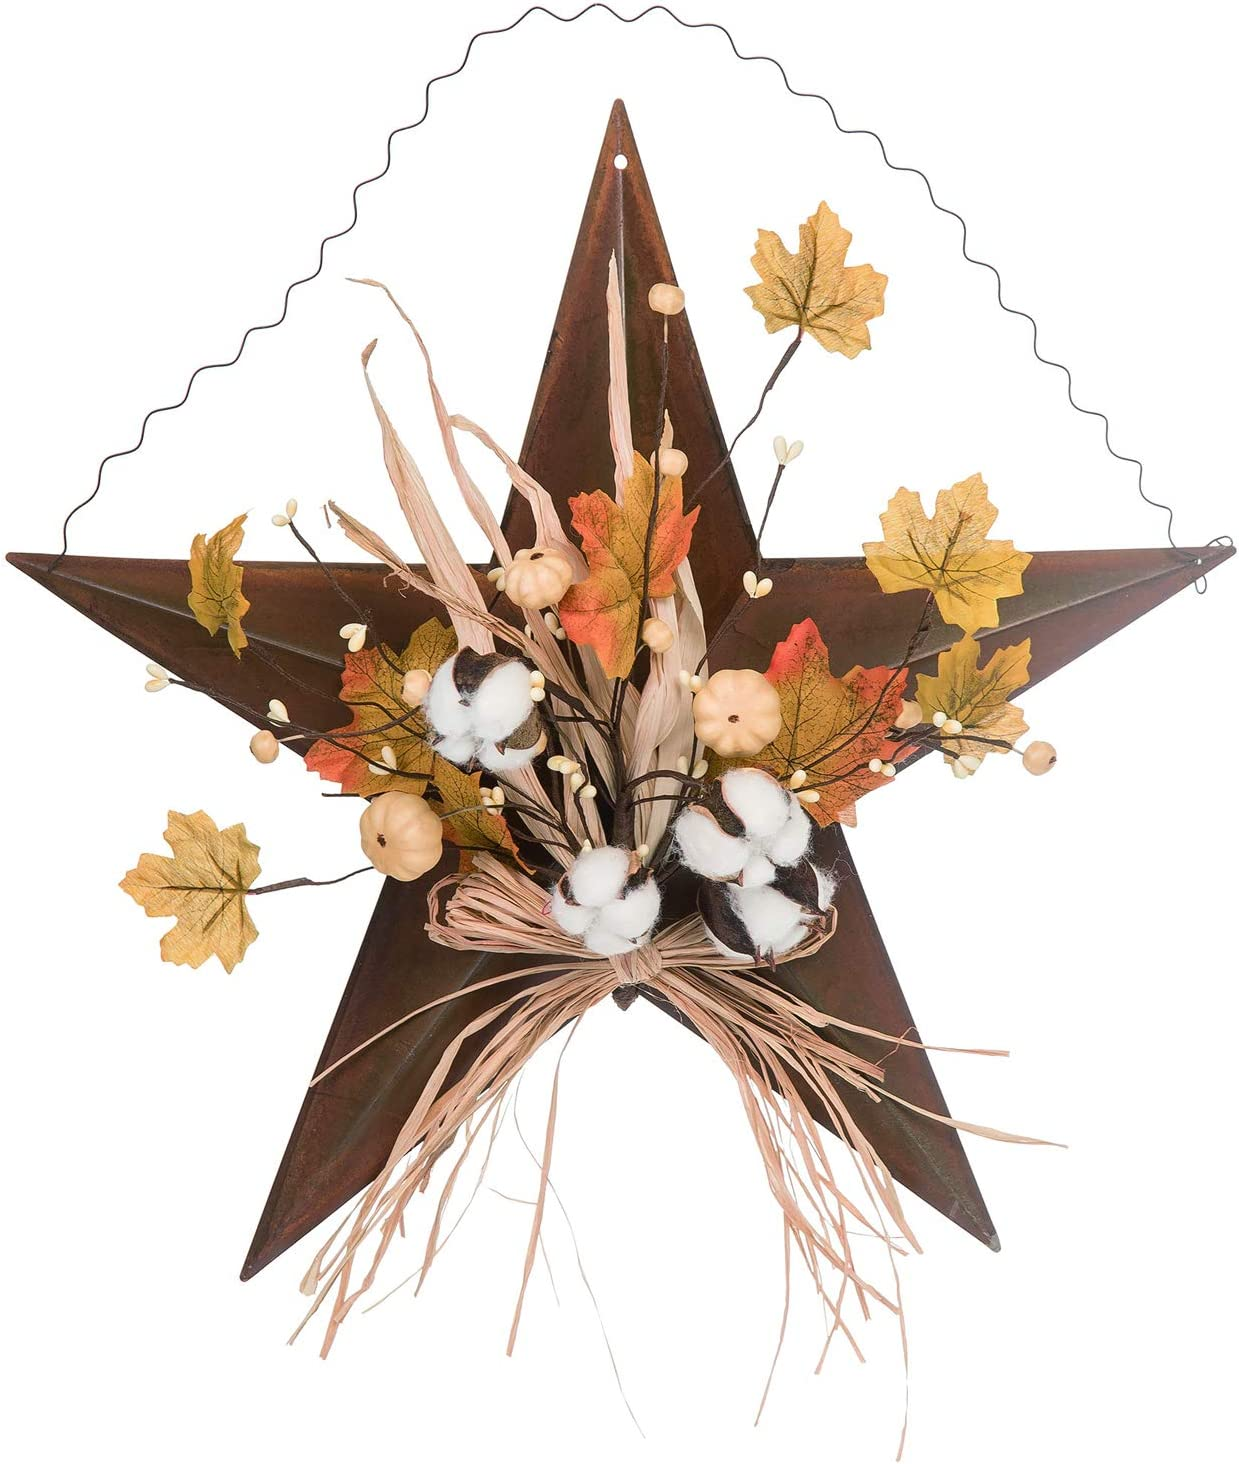 Orchid & Ivy 18-Inch Rustic Metal Harvest Star Wreath – Hanging Fall Door Decoration (Leaves)